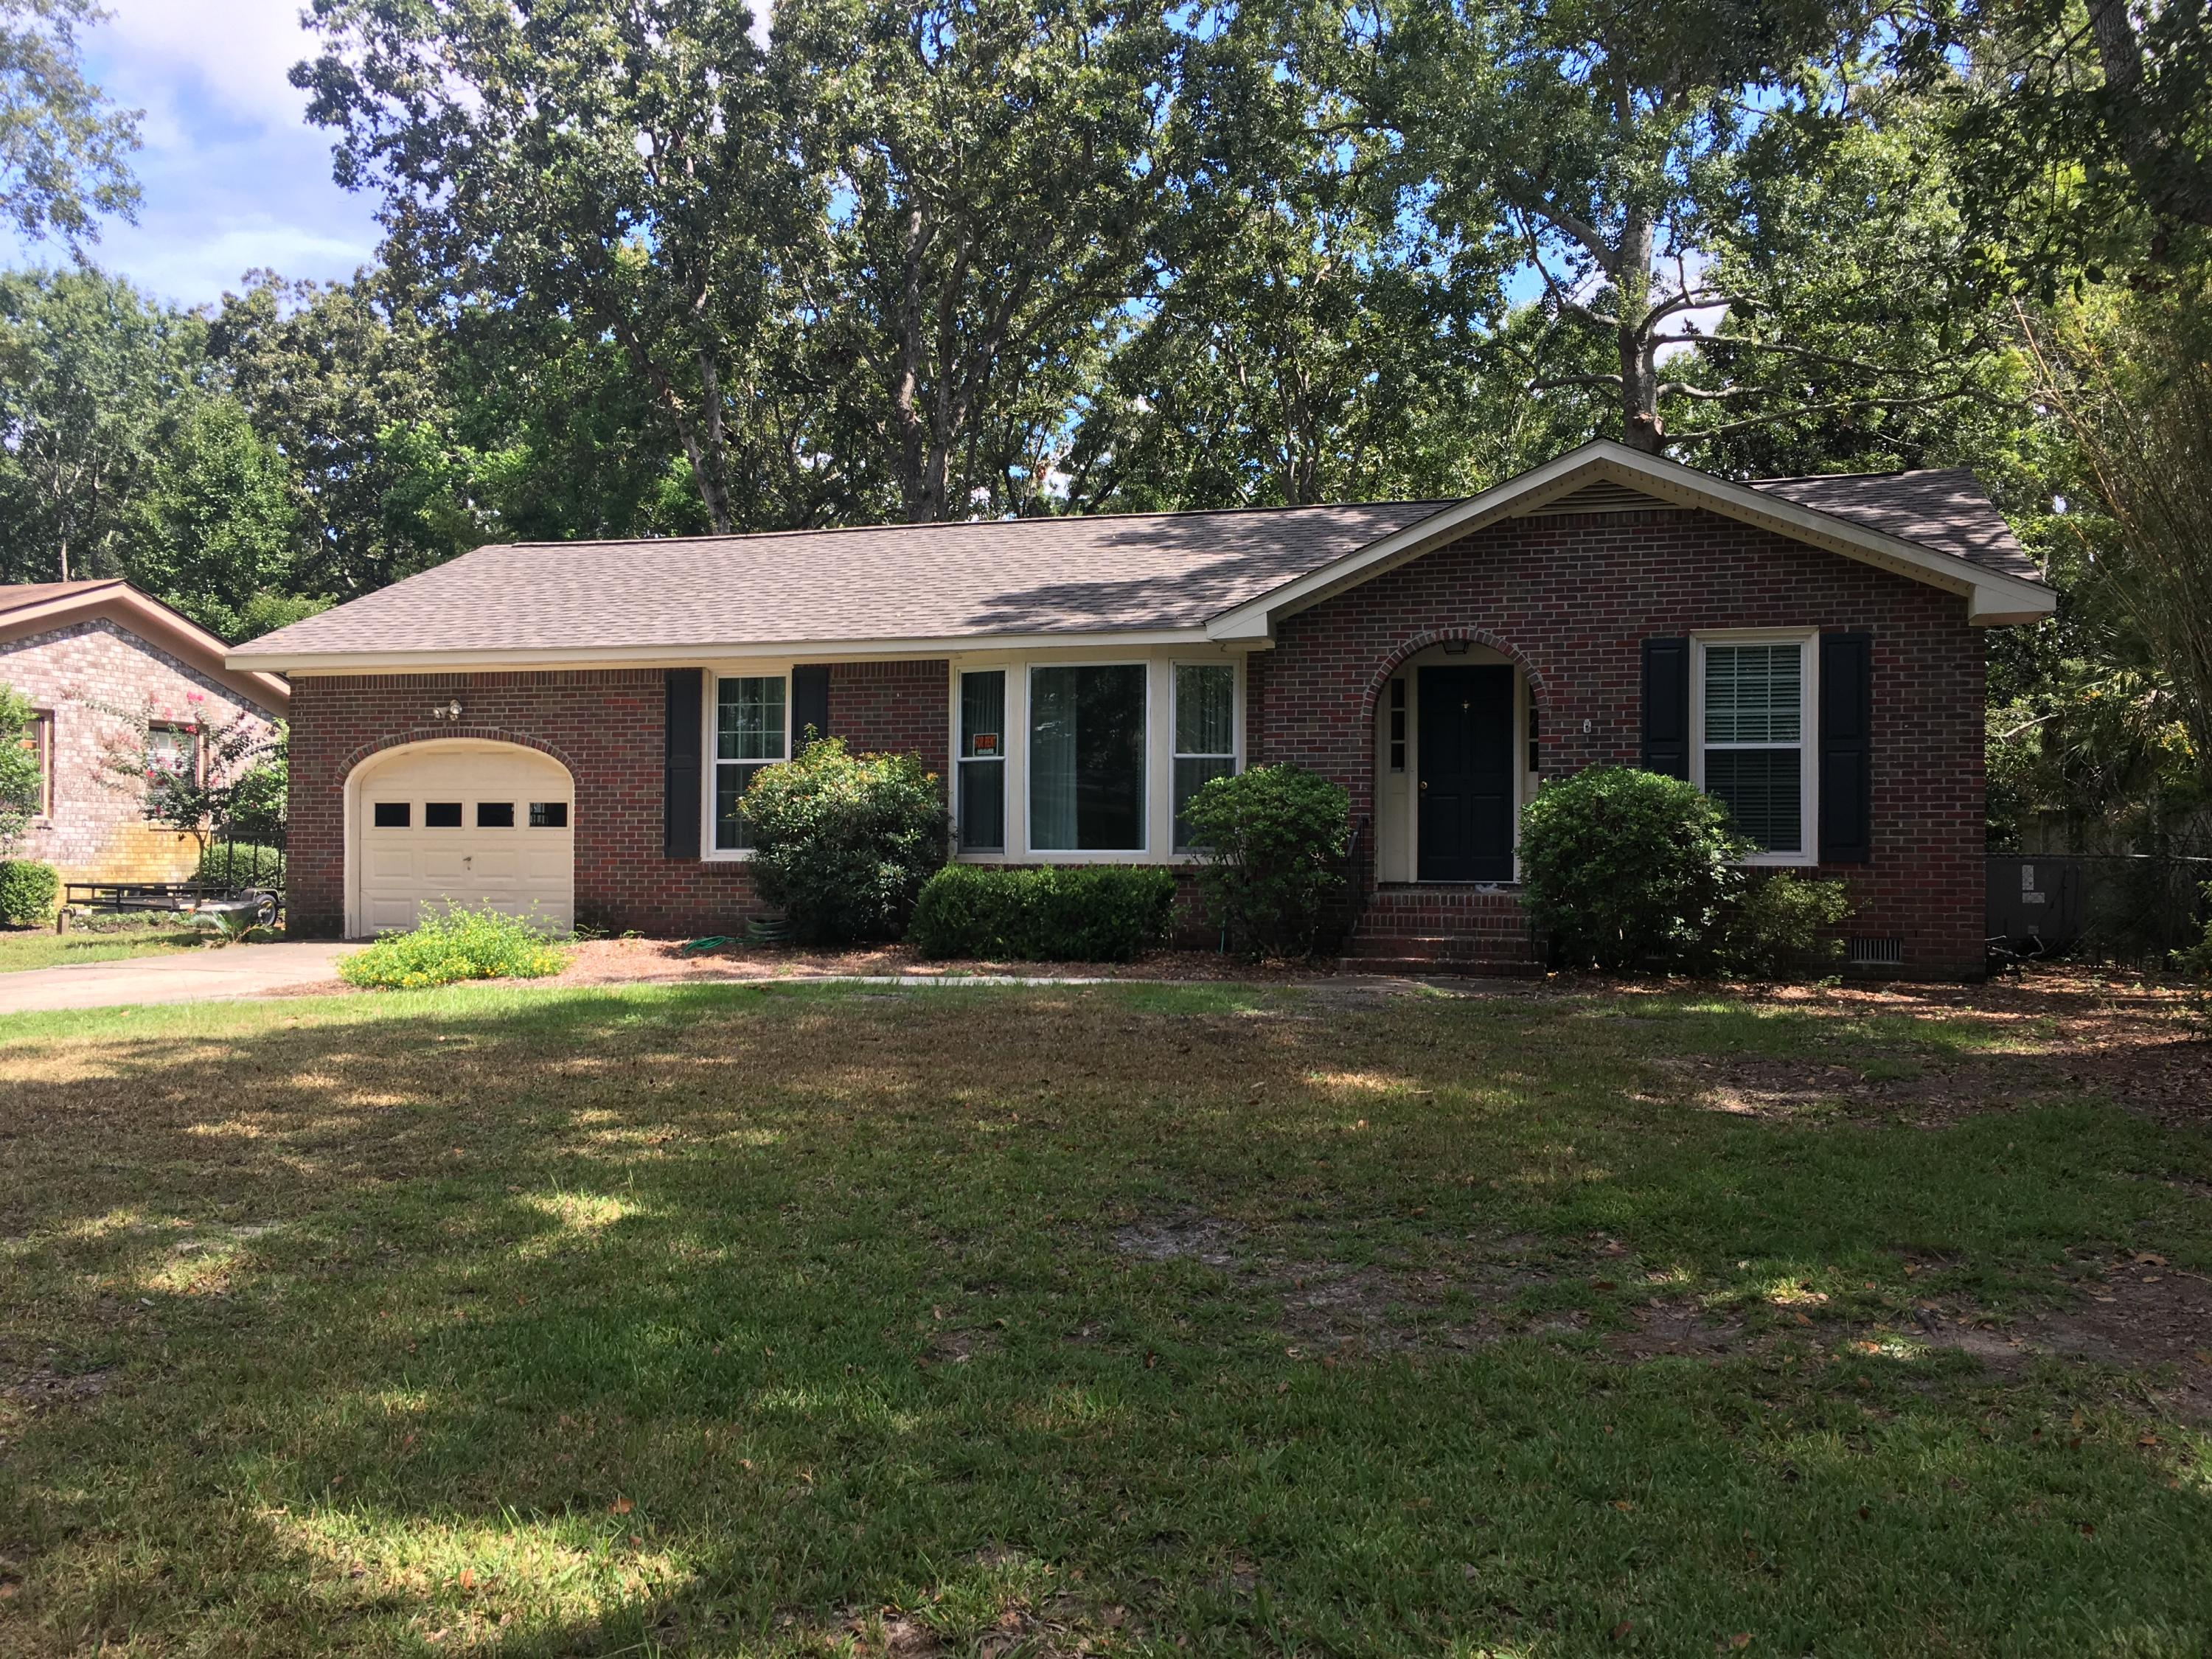 Parish Place Homes For Sale - 850 O'Sullivan, Mount Pleasant, SC - 22